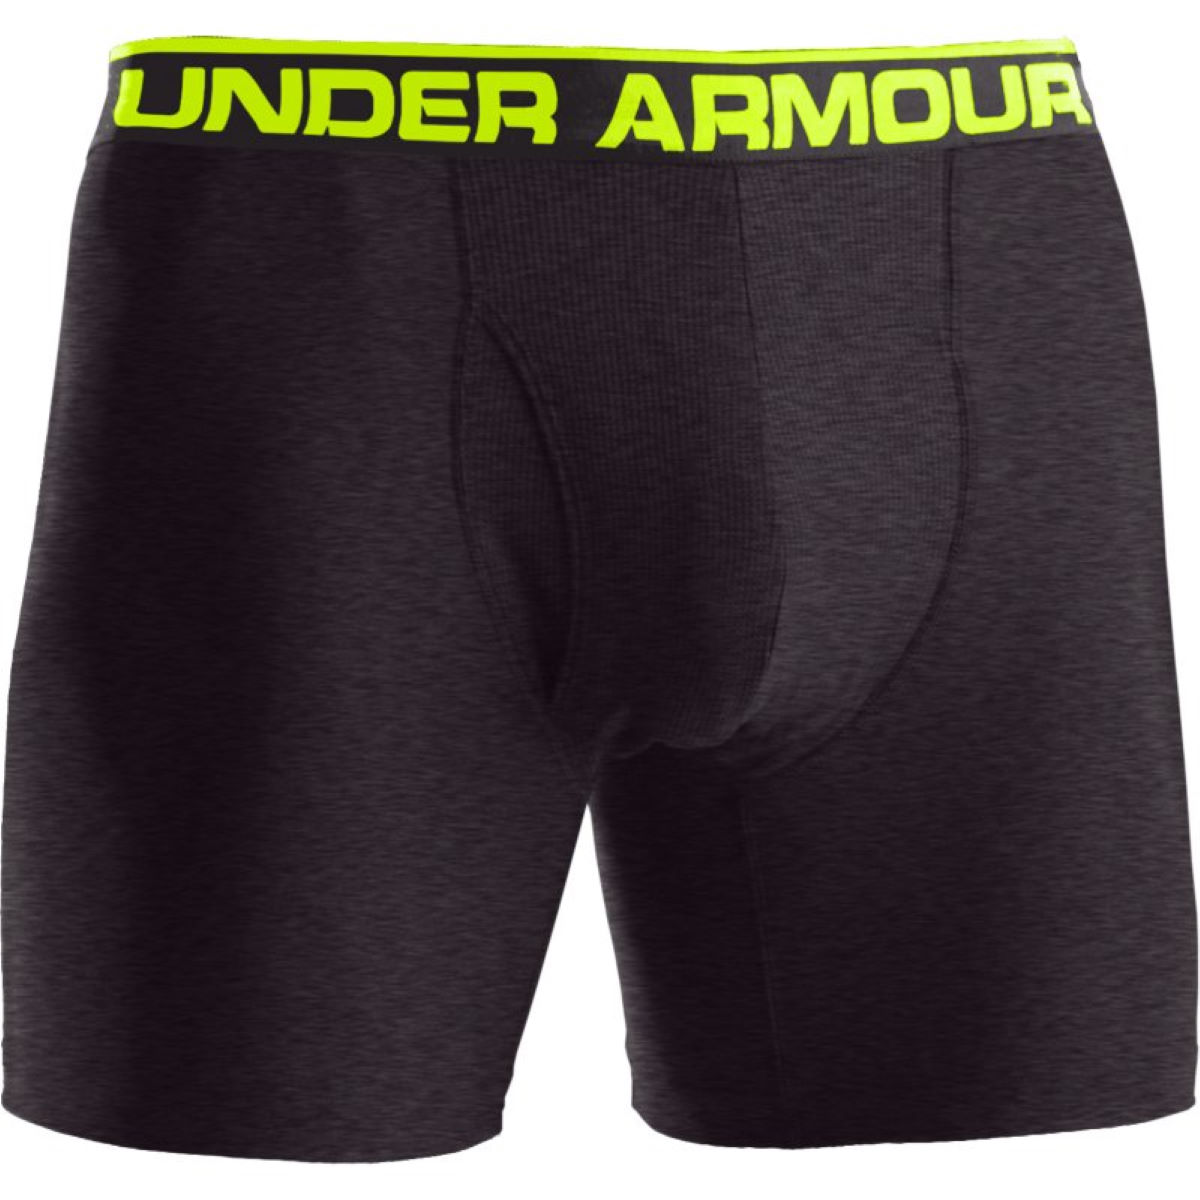 Under Armour The Original 6'' Boxer Jock - AW14